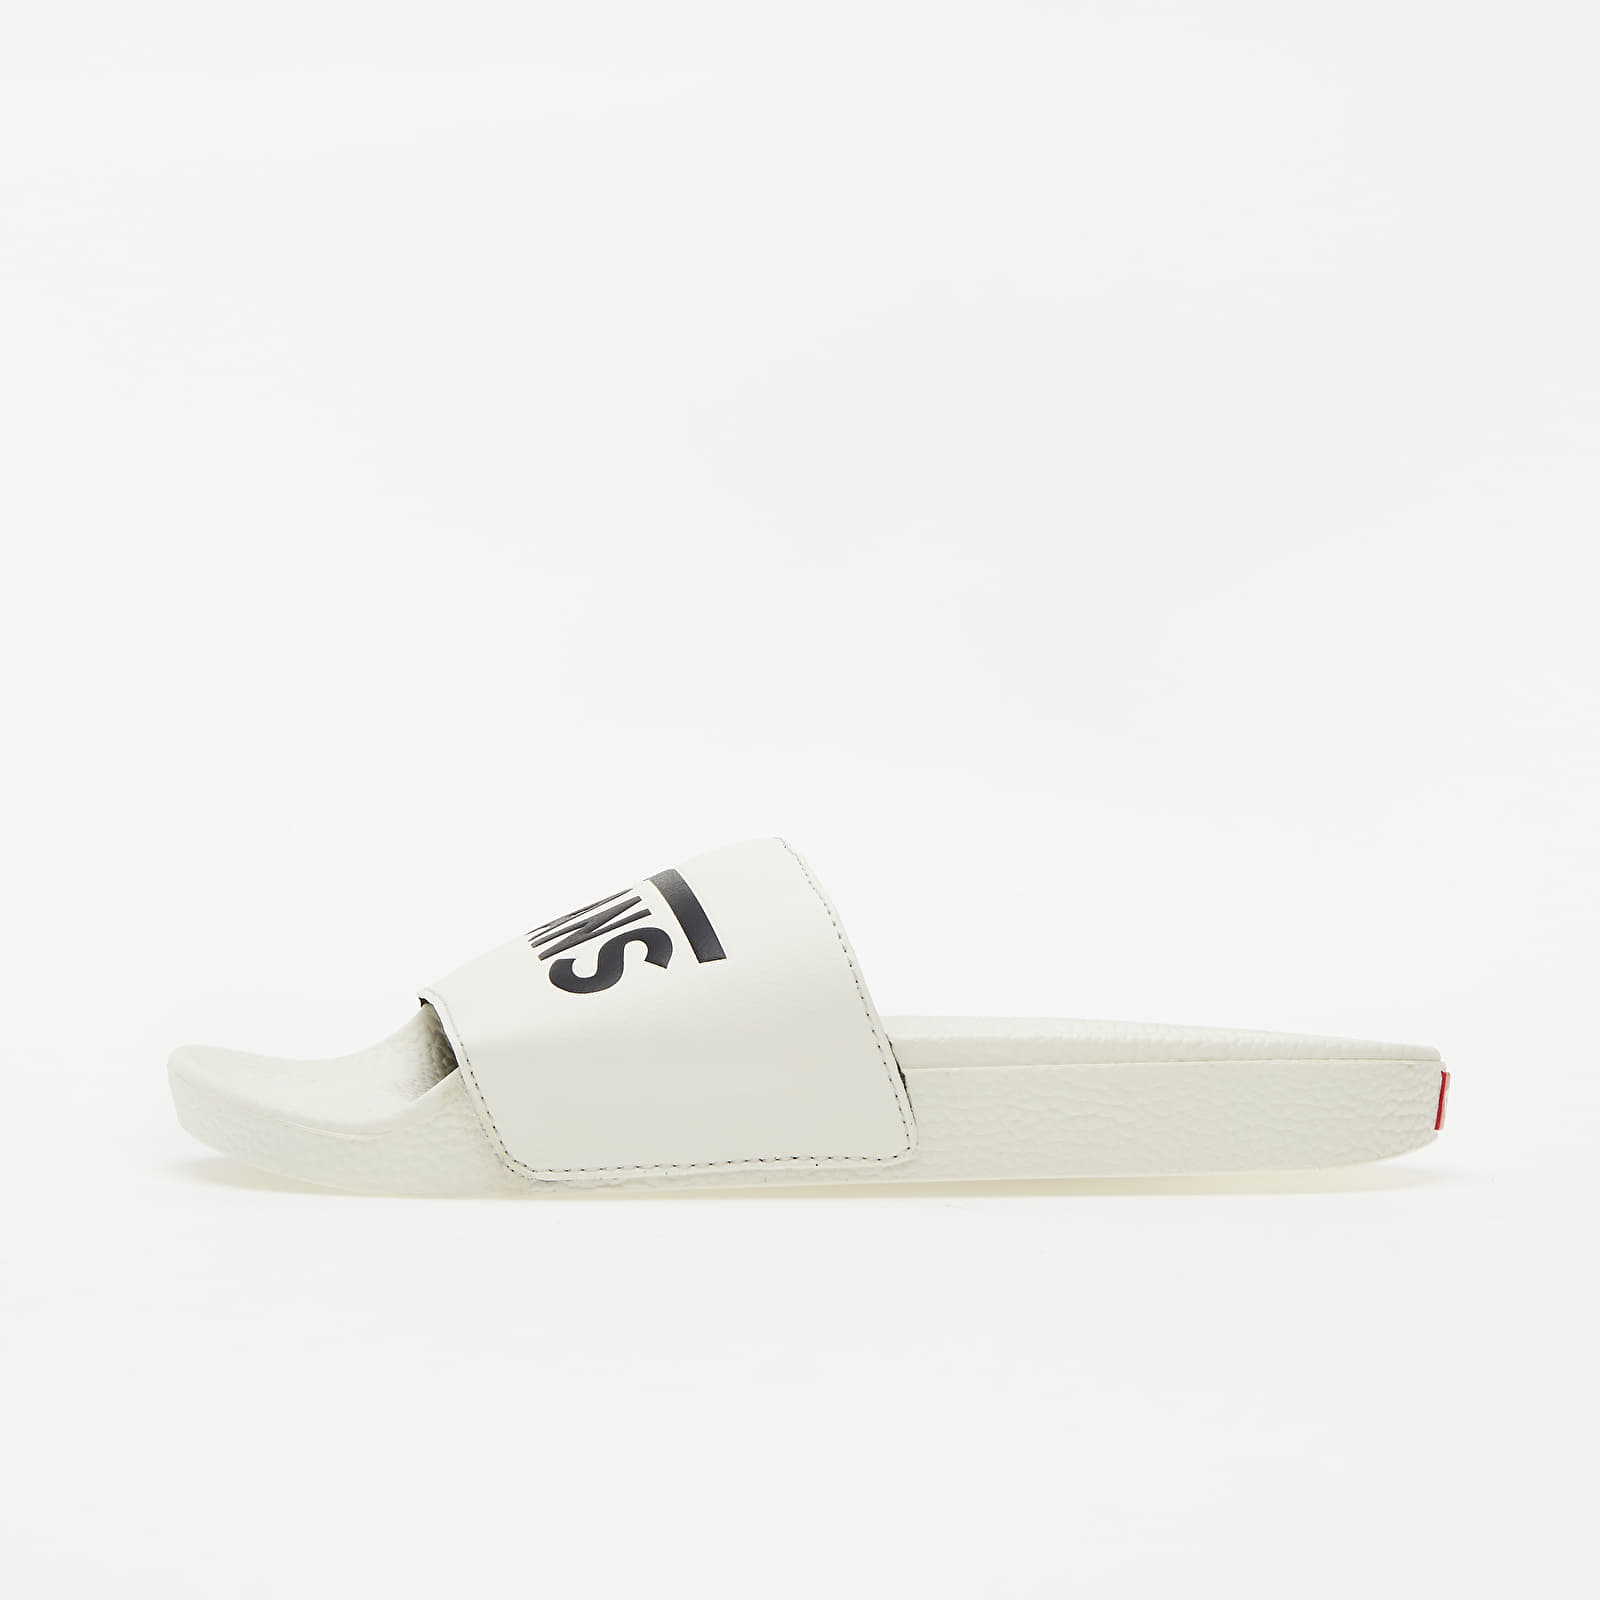 Women's shoes Vans Slide-On (Vans) Marshmallow